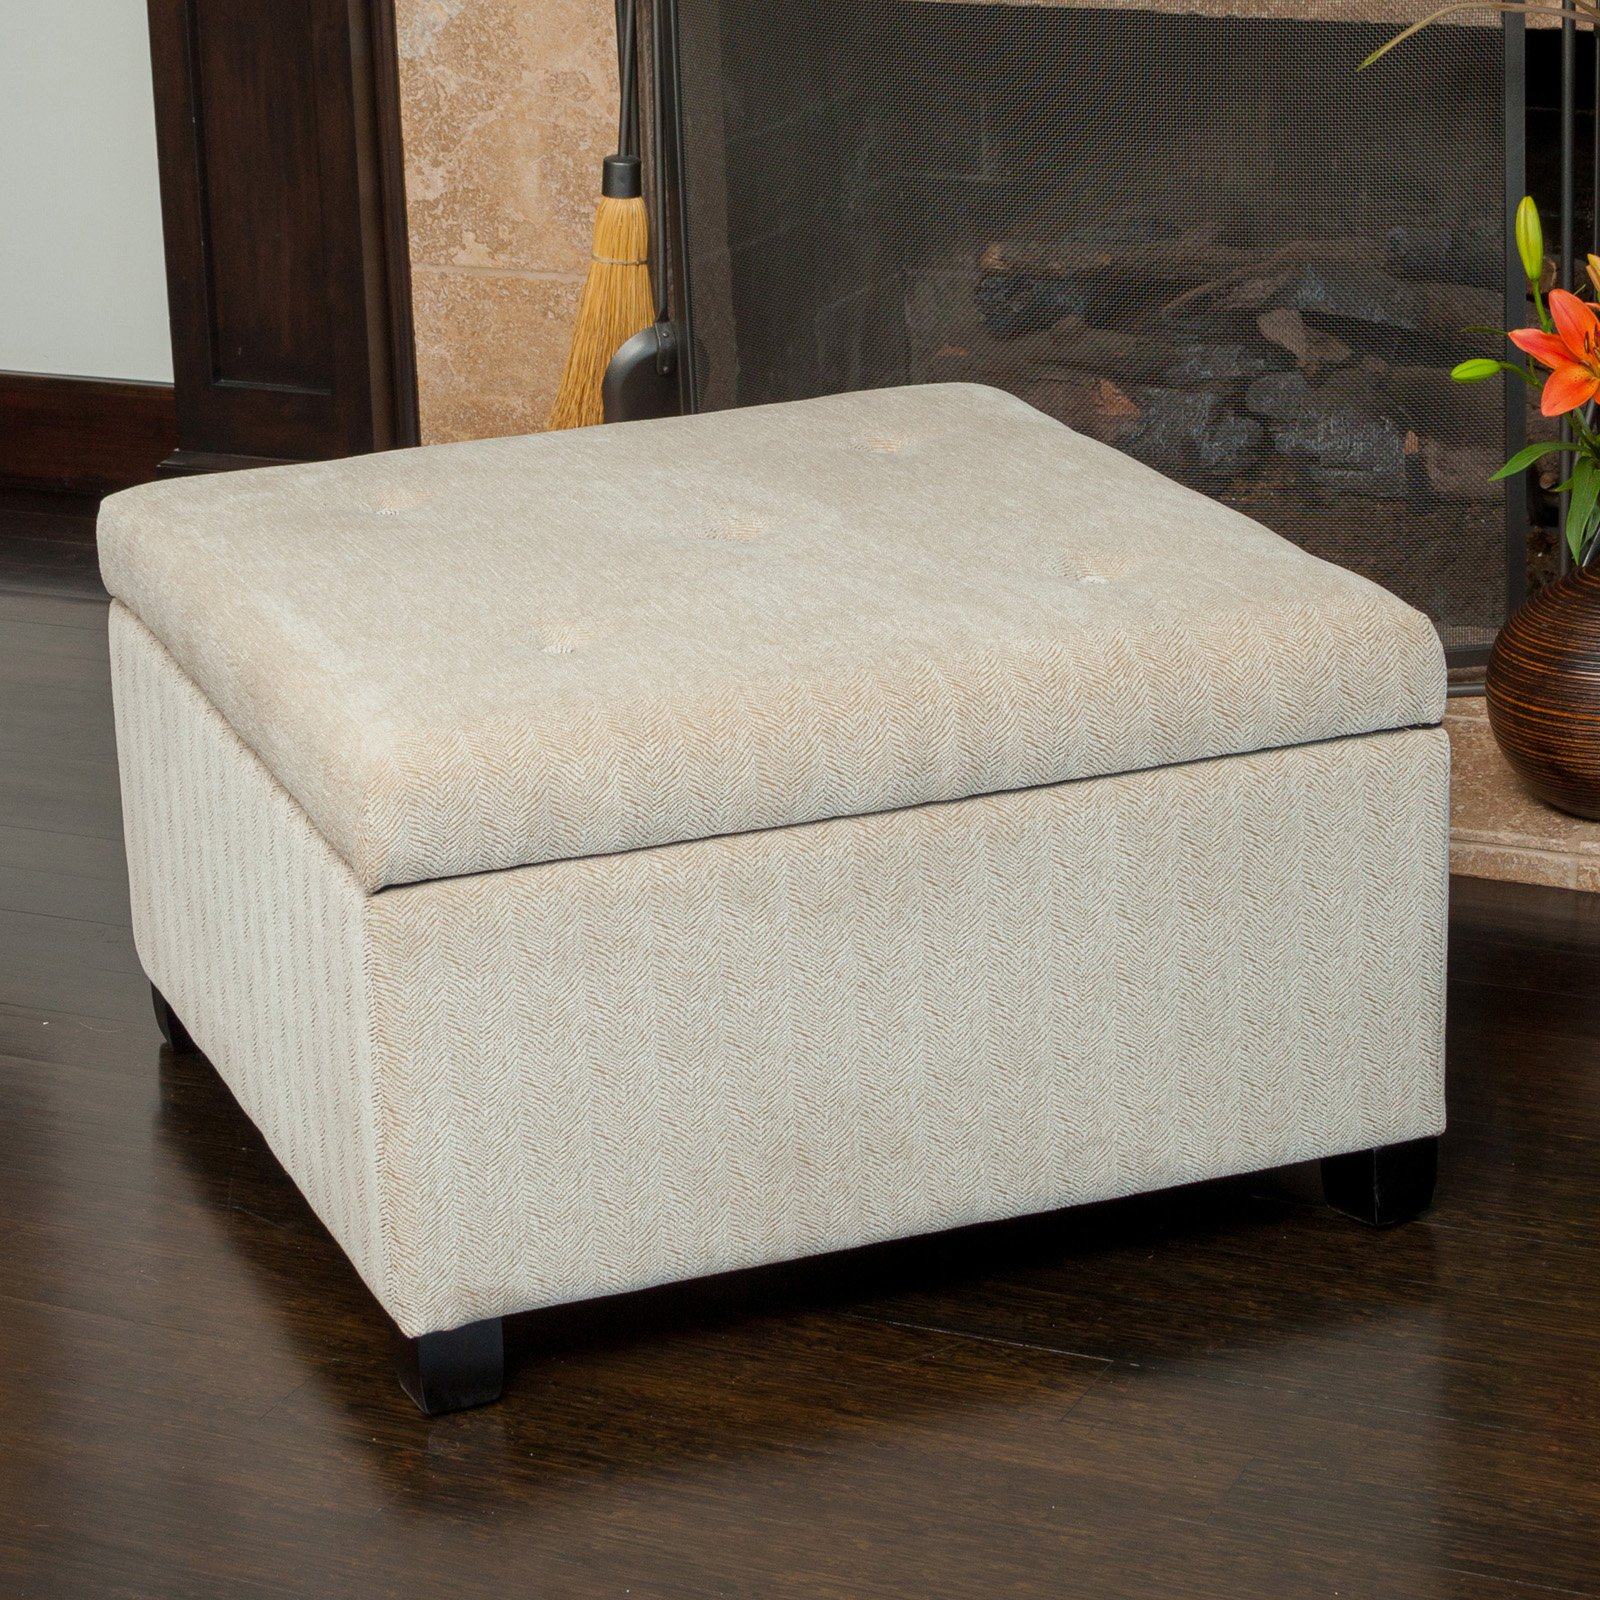 Best Selling Home Stephon Wheat Tufted Storage Ottoman